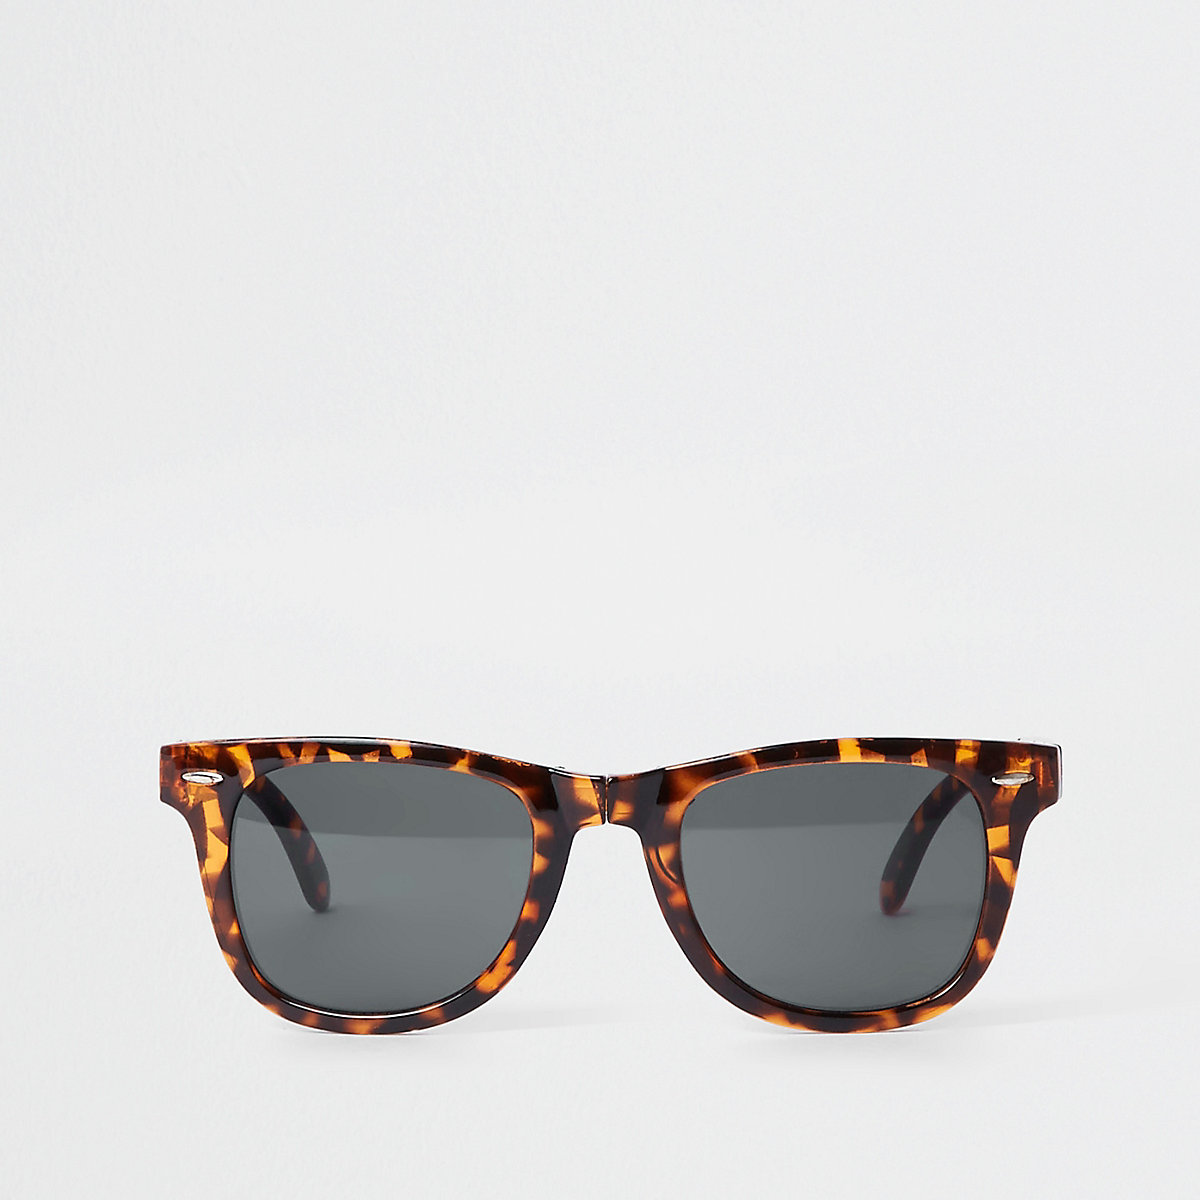 Brown tortoise shell foldable sunglasses